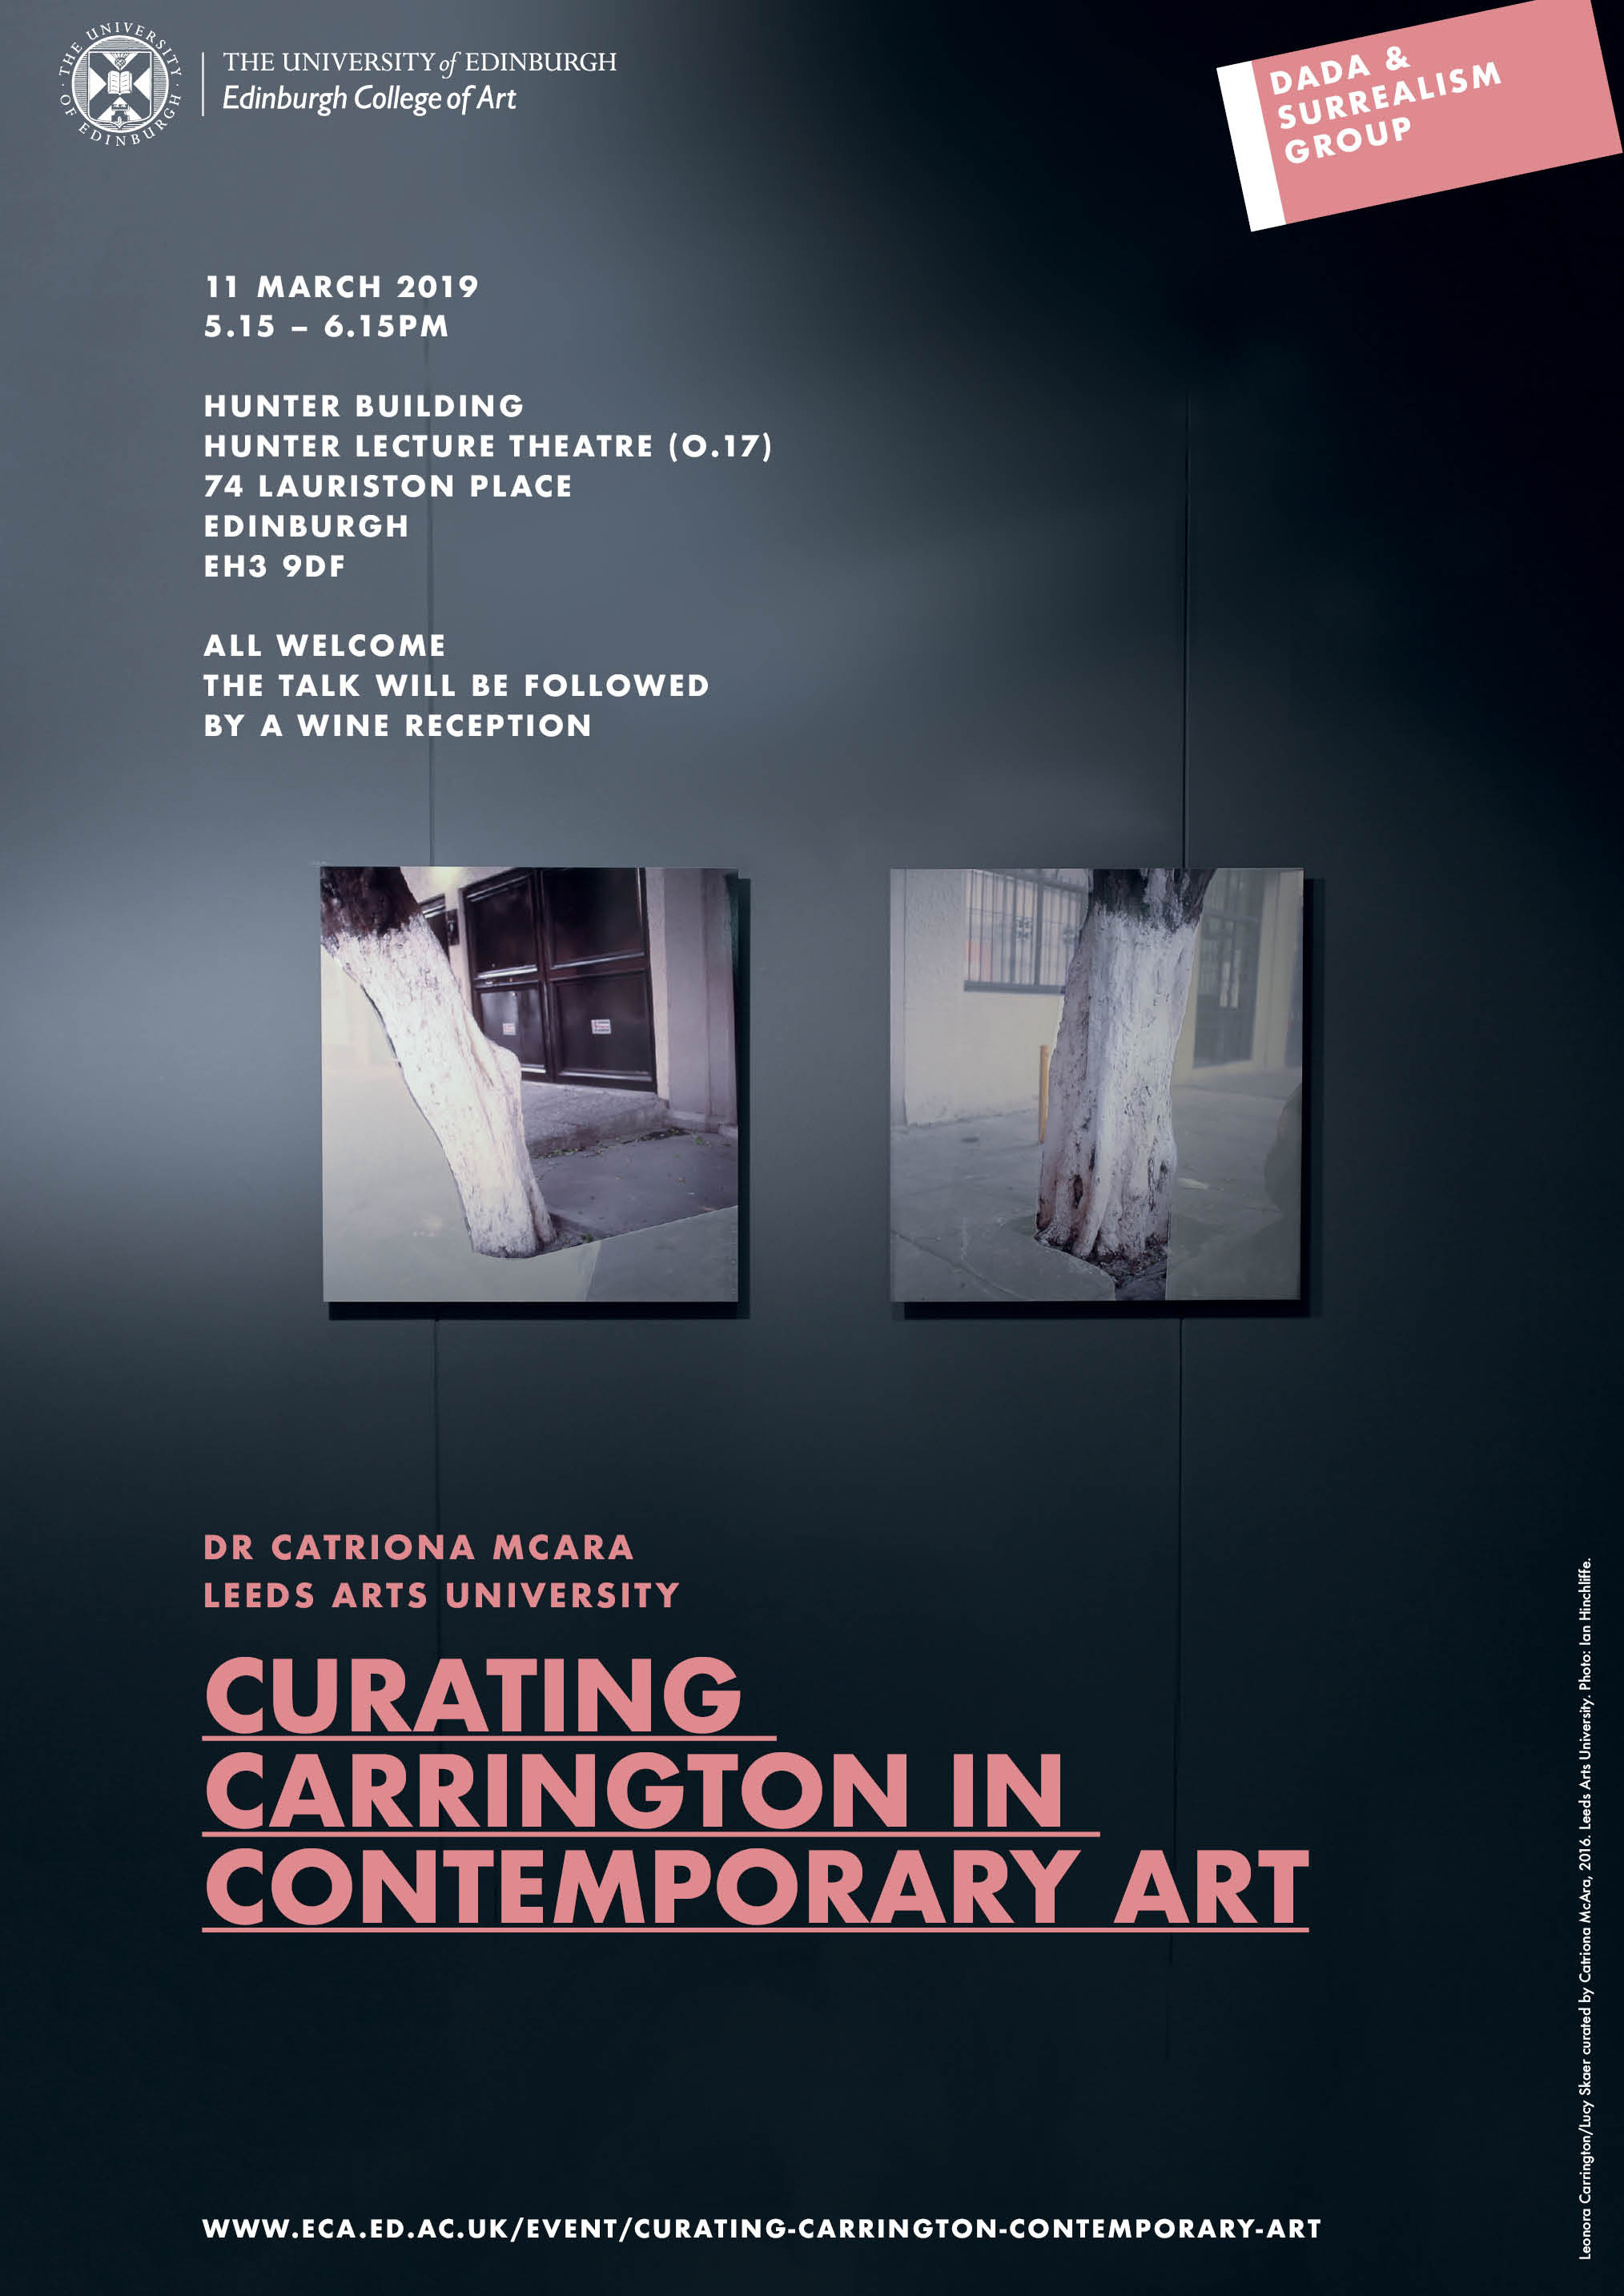 Curating Carrington in Contemporary Art